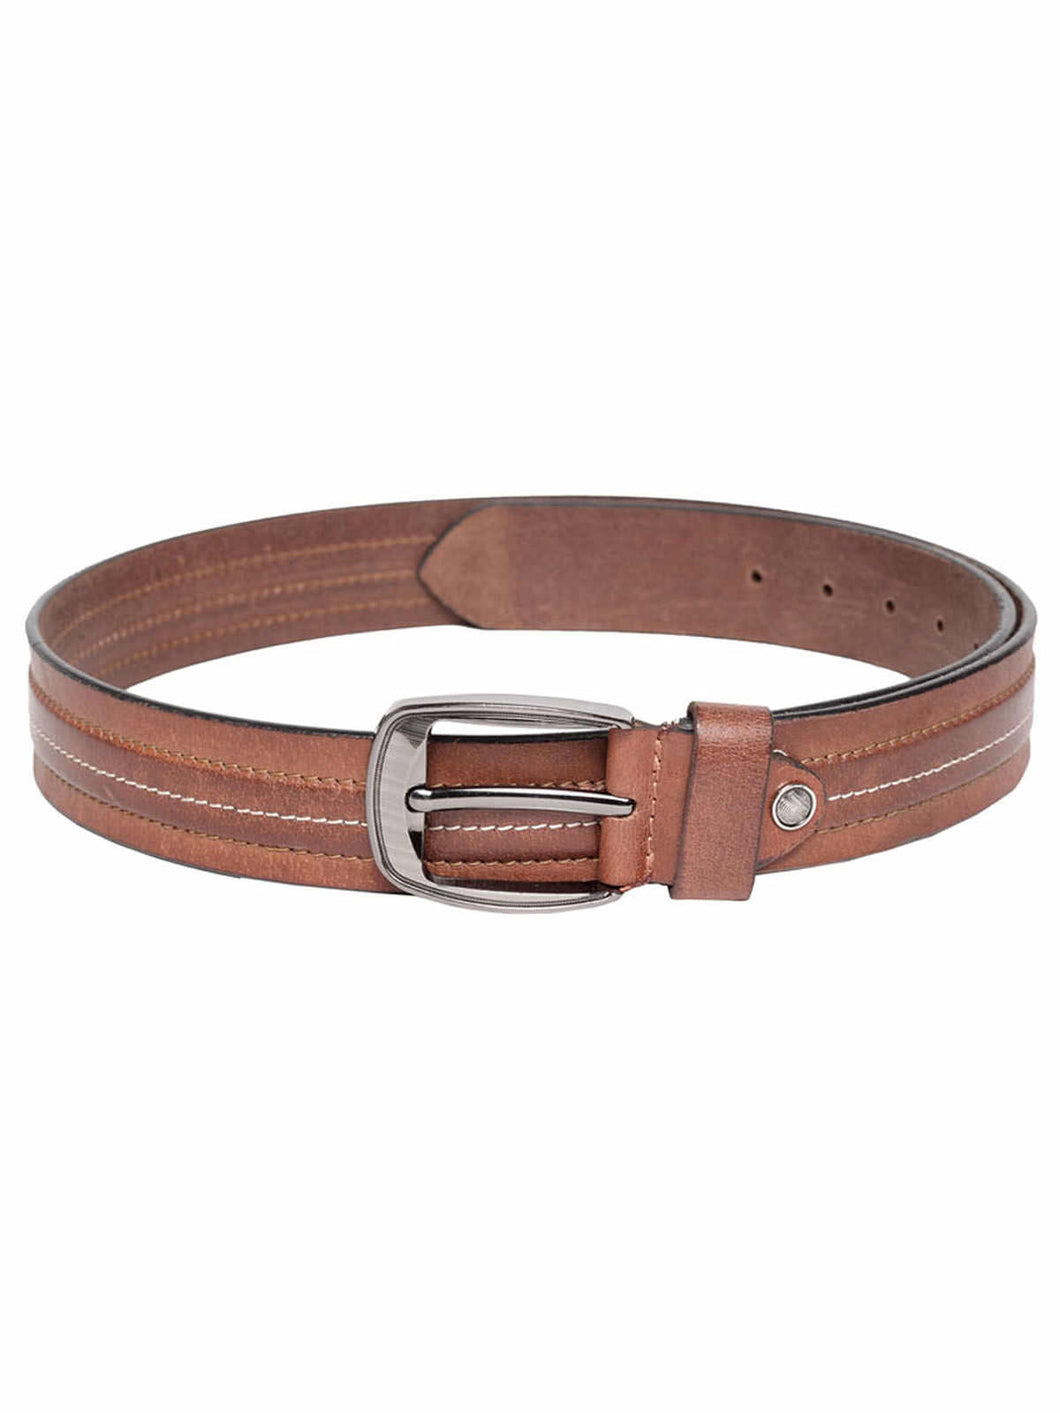 Teakwood Leather Belts